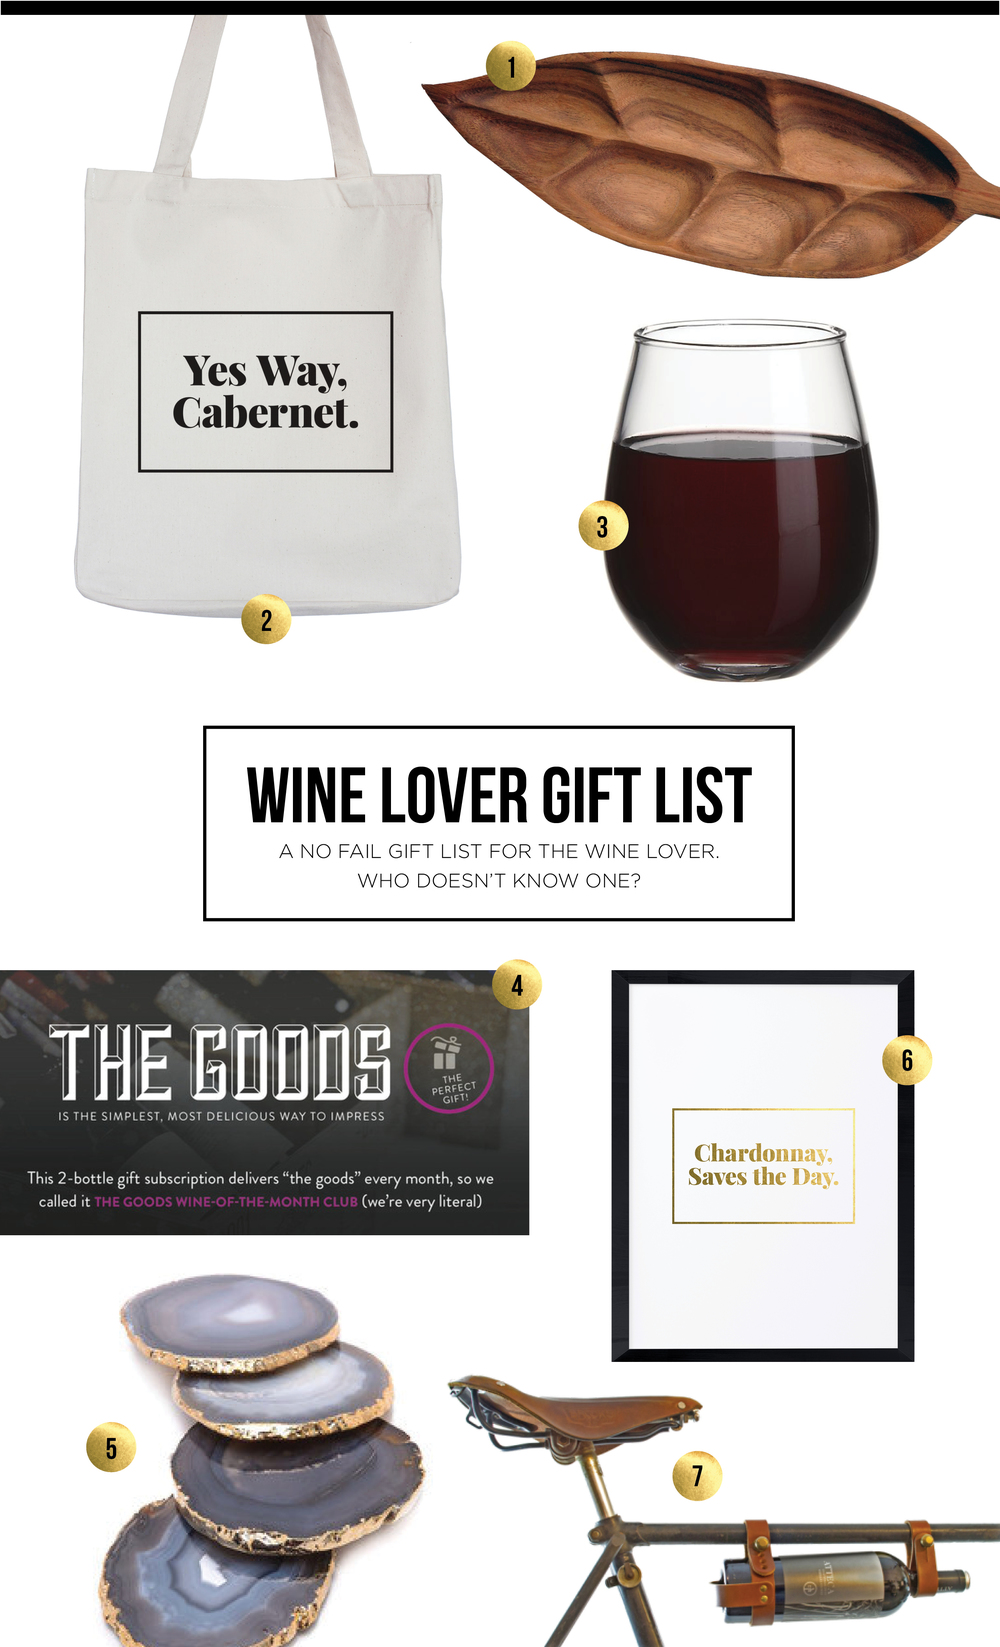 swell-wine-gifts